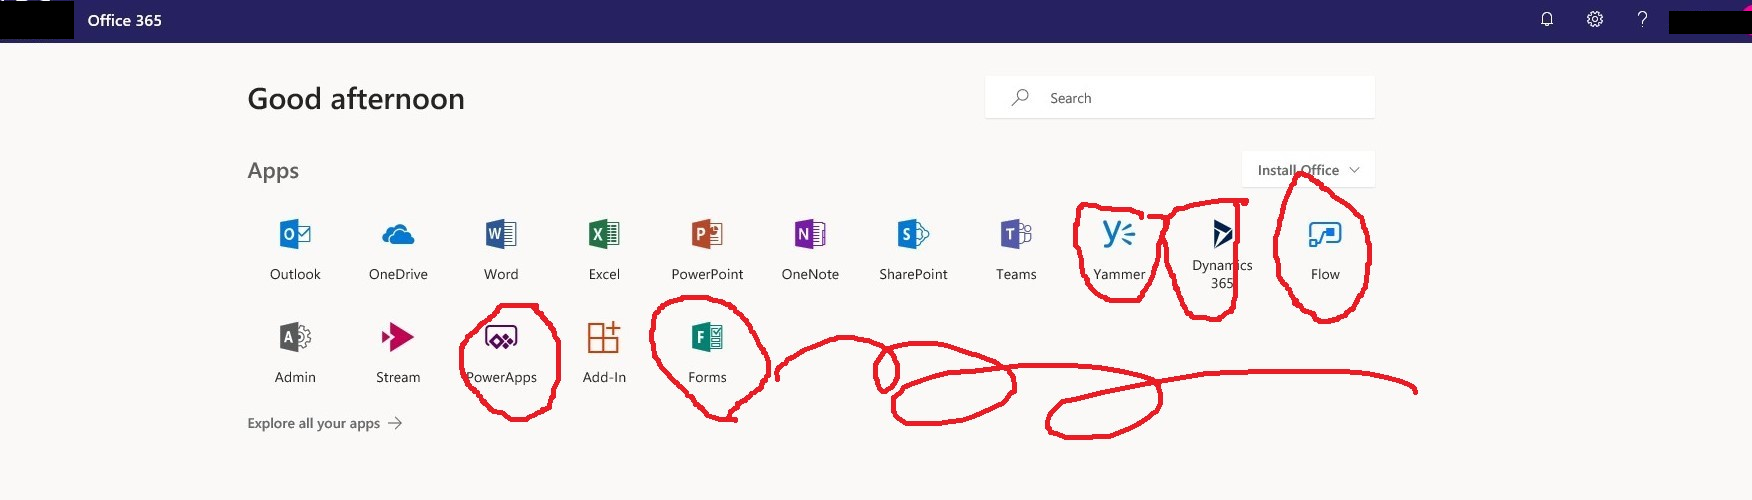 how to hide app tiles in Office 365 - Microsoft Community